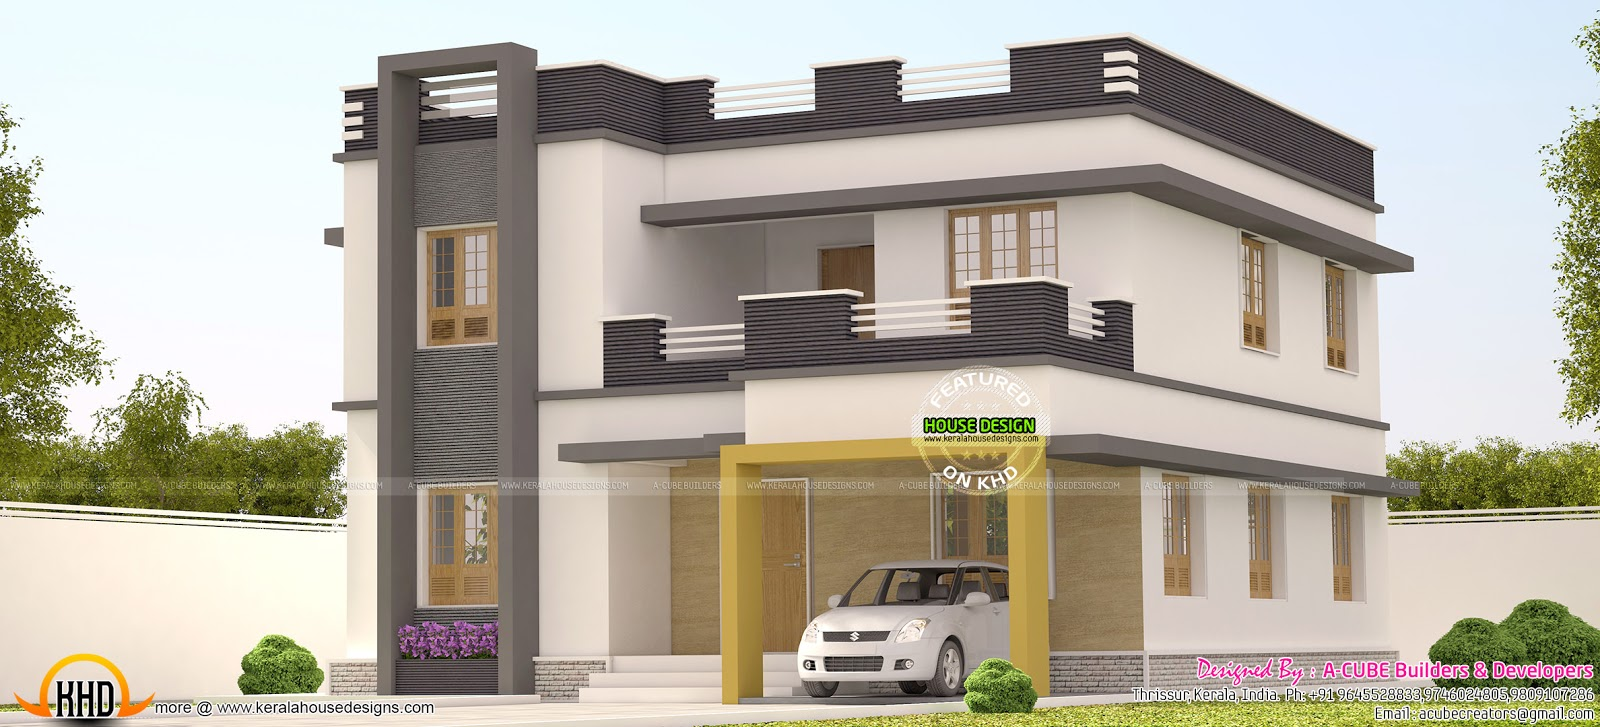 2252 sq ft flat roof 3 bedroom home